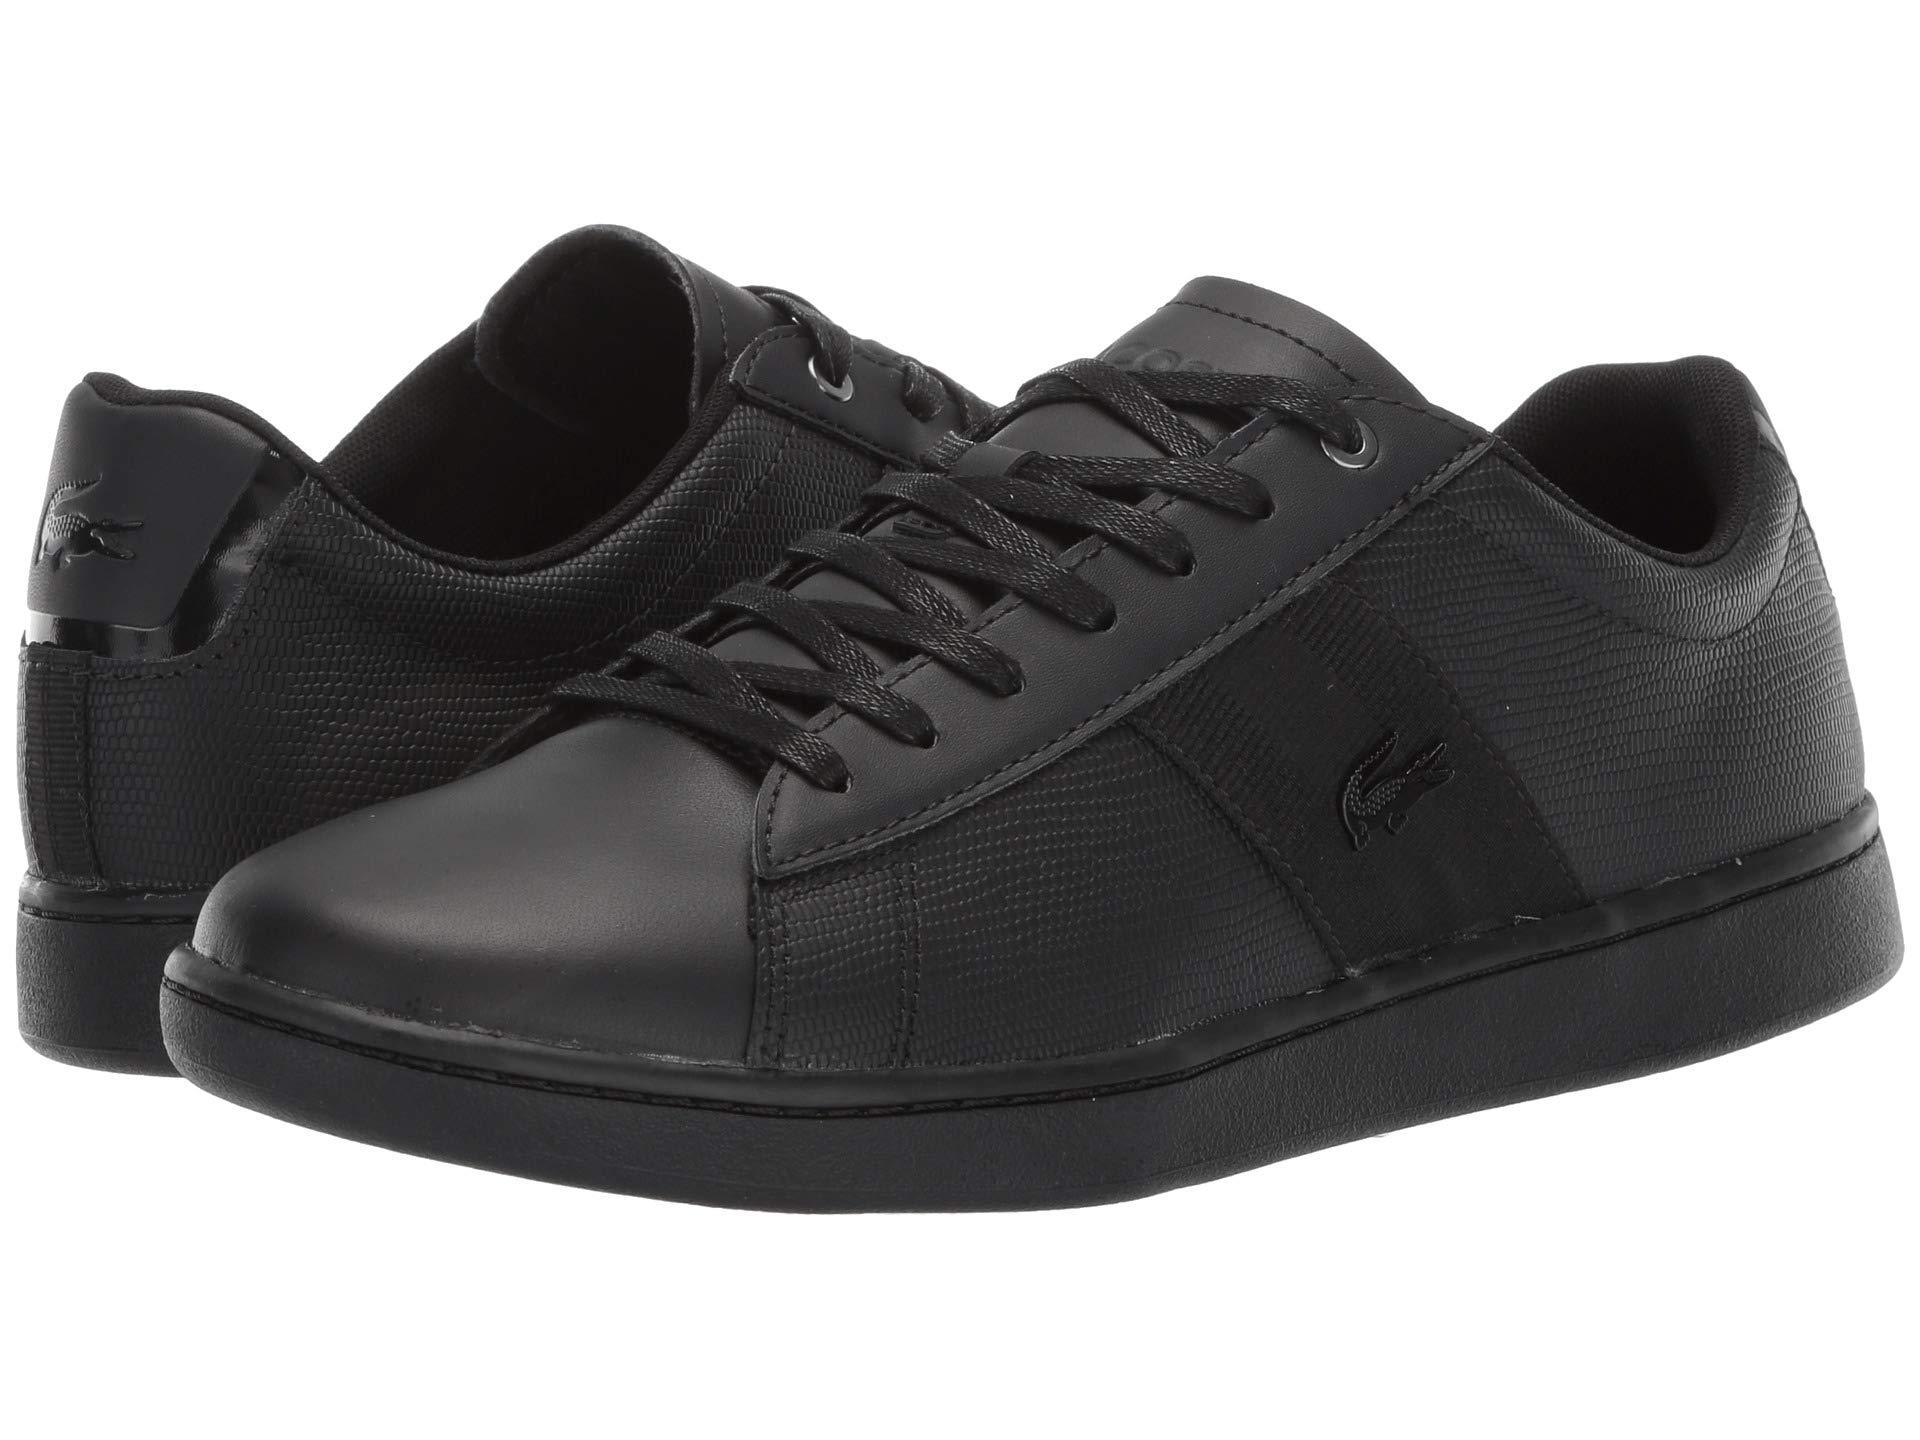 Lacoste Leather Carnaby Evo 119 5 Sma